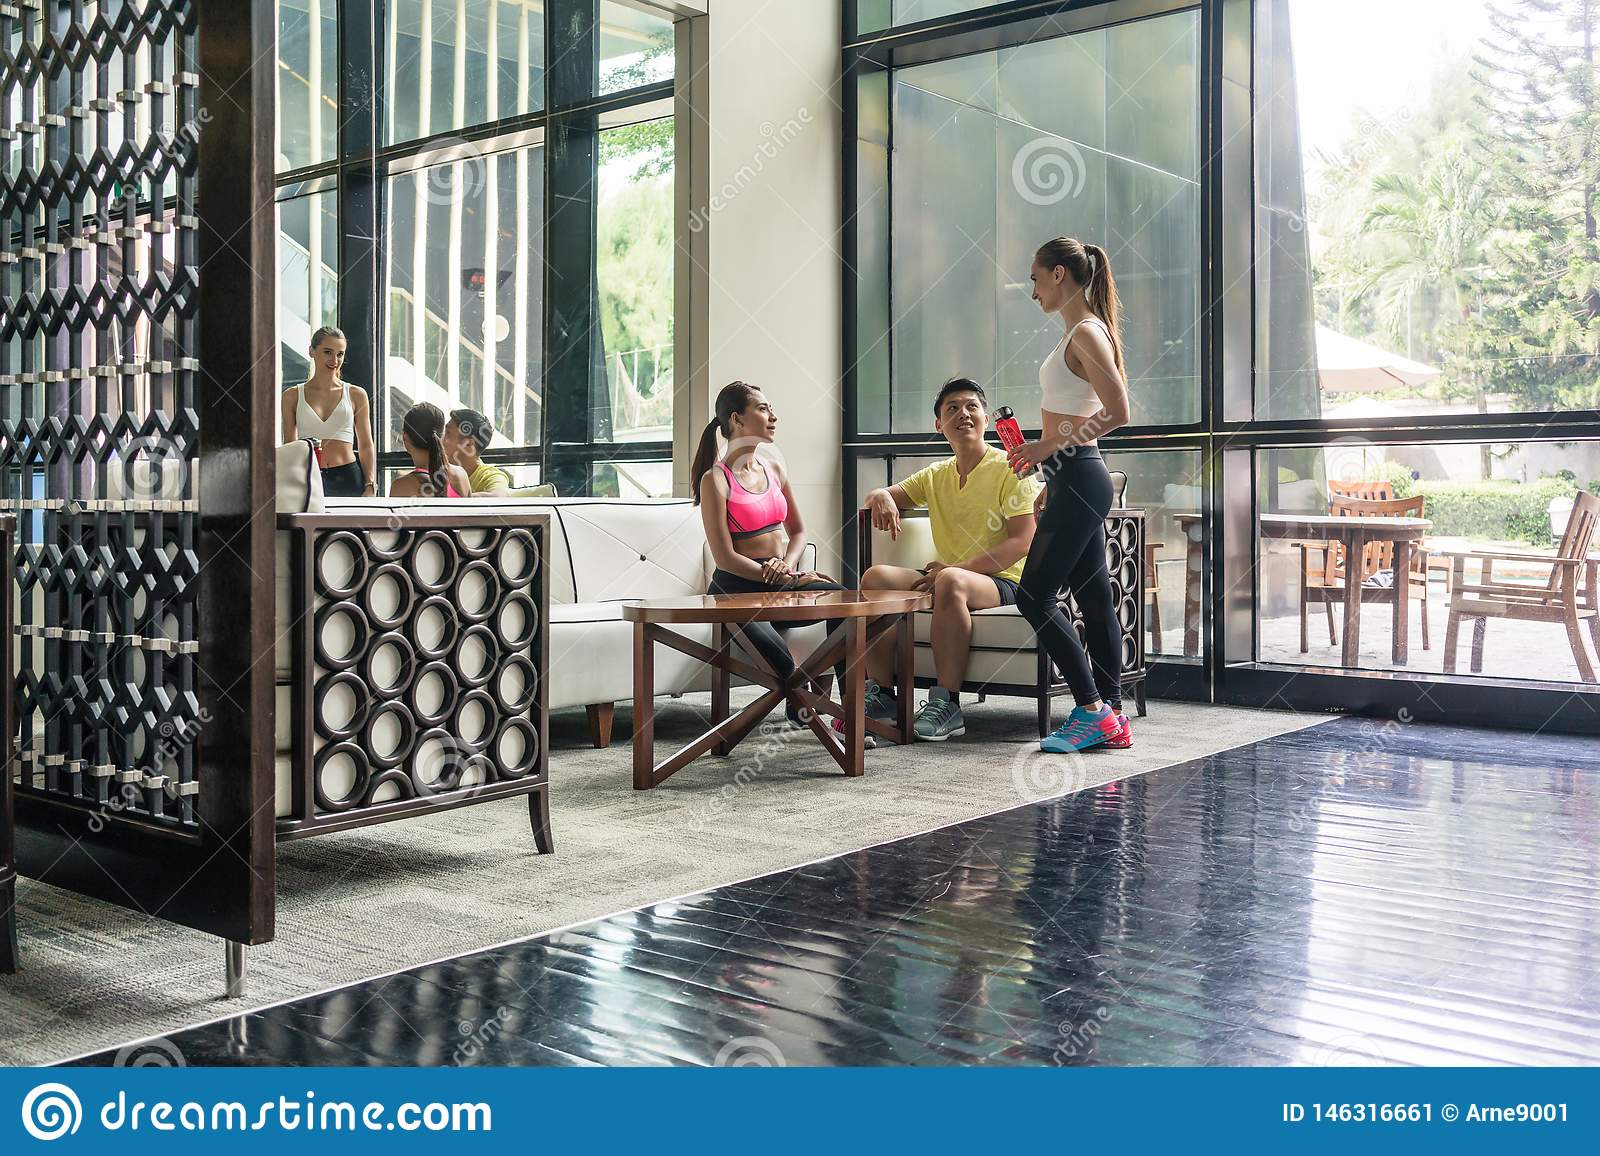 Young people socializing in the lounge area of a trendy health club